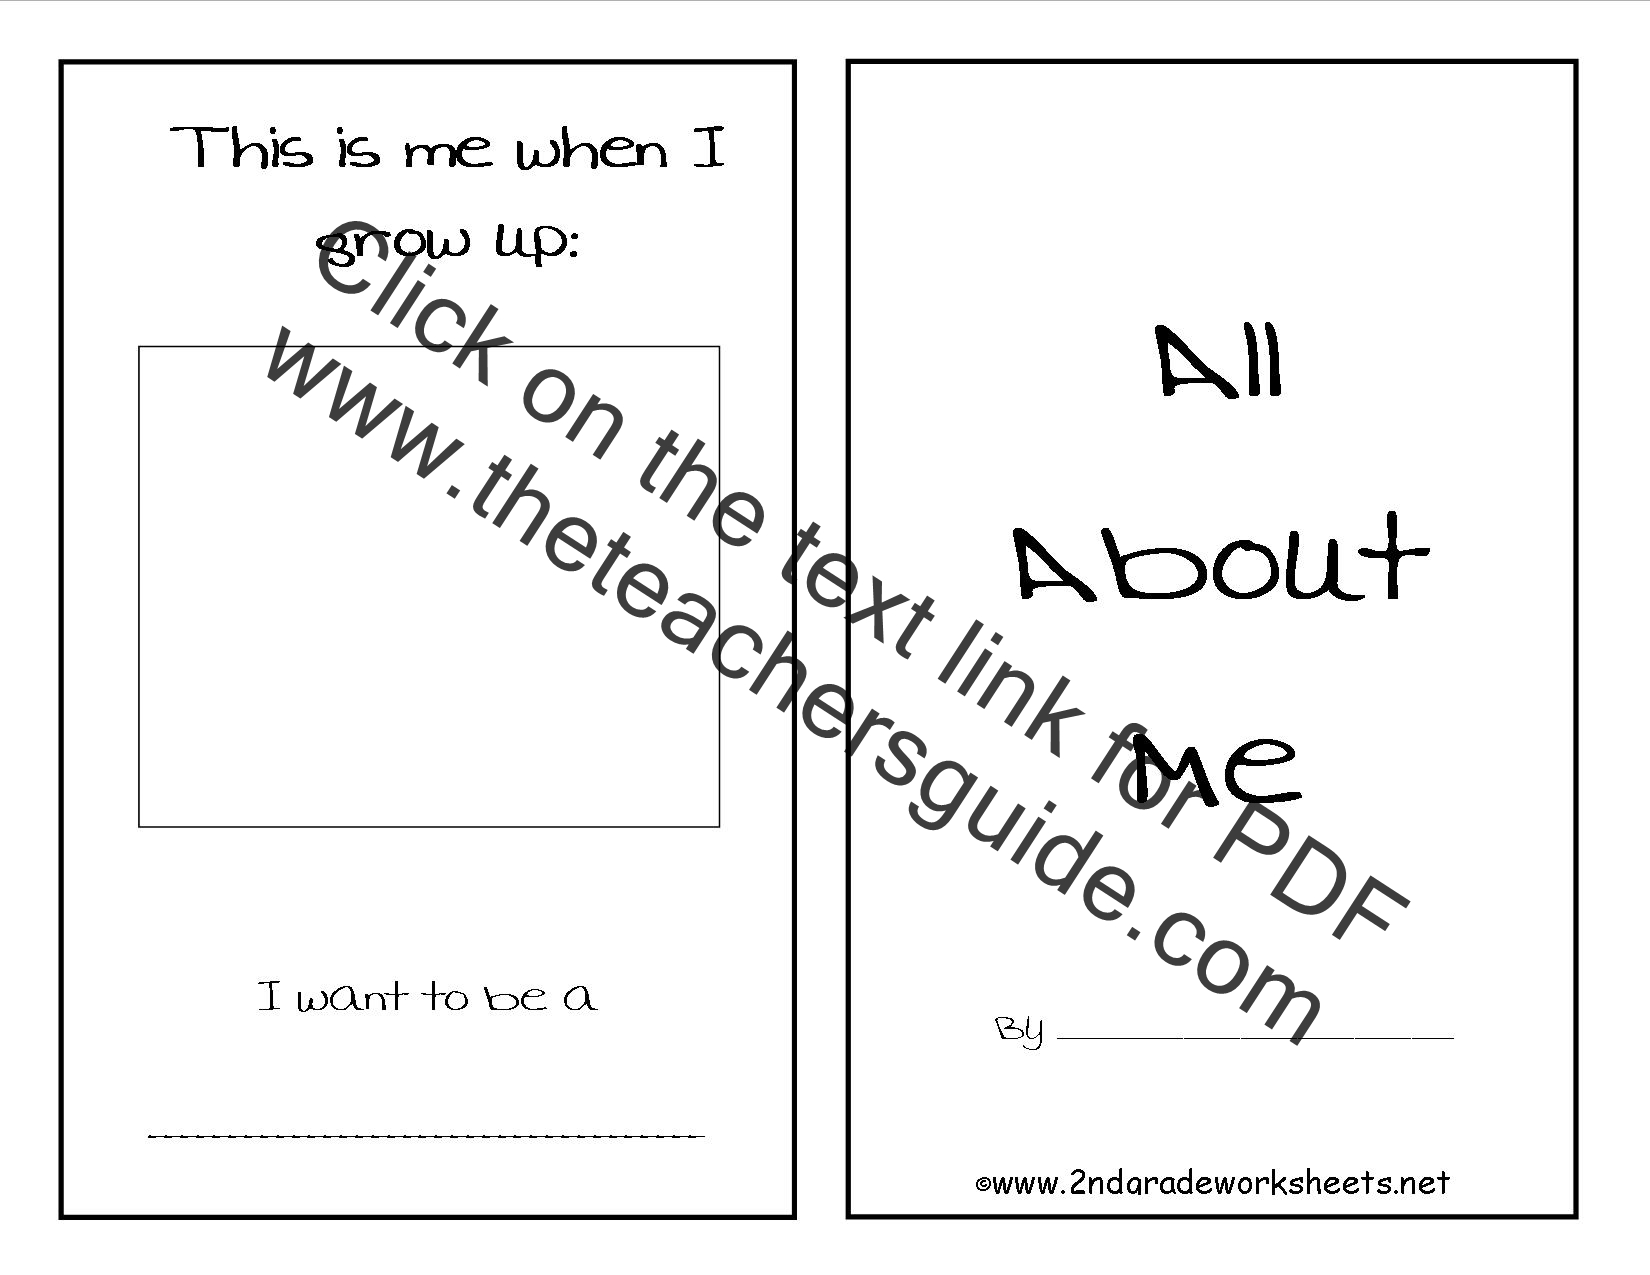 All About Me Sheets For Students